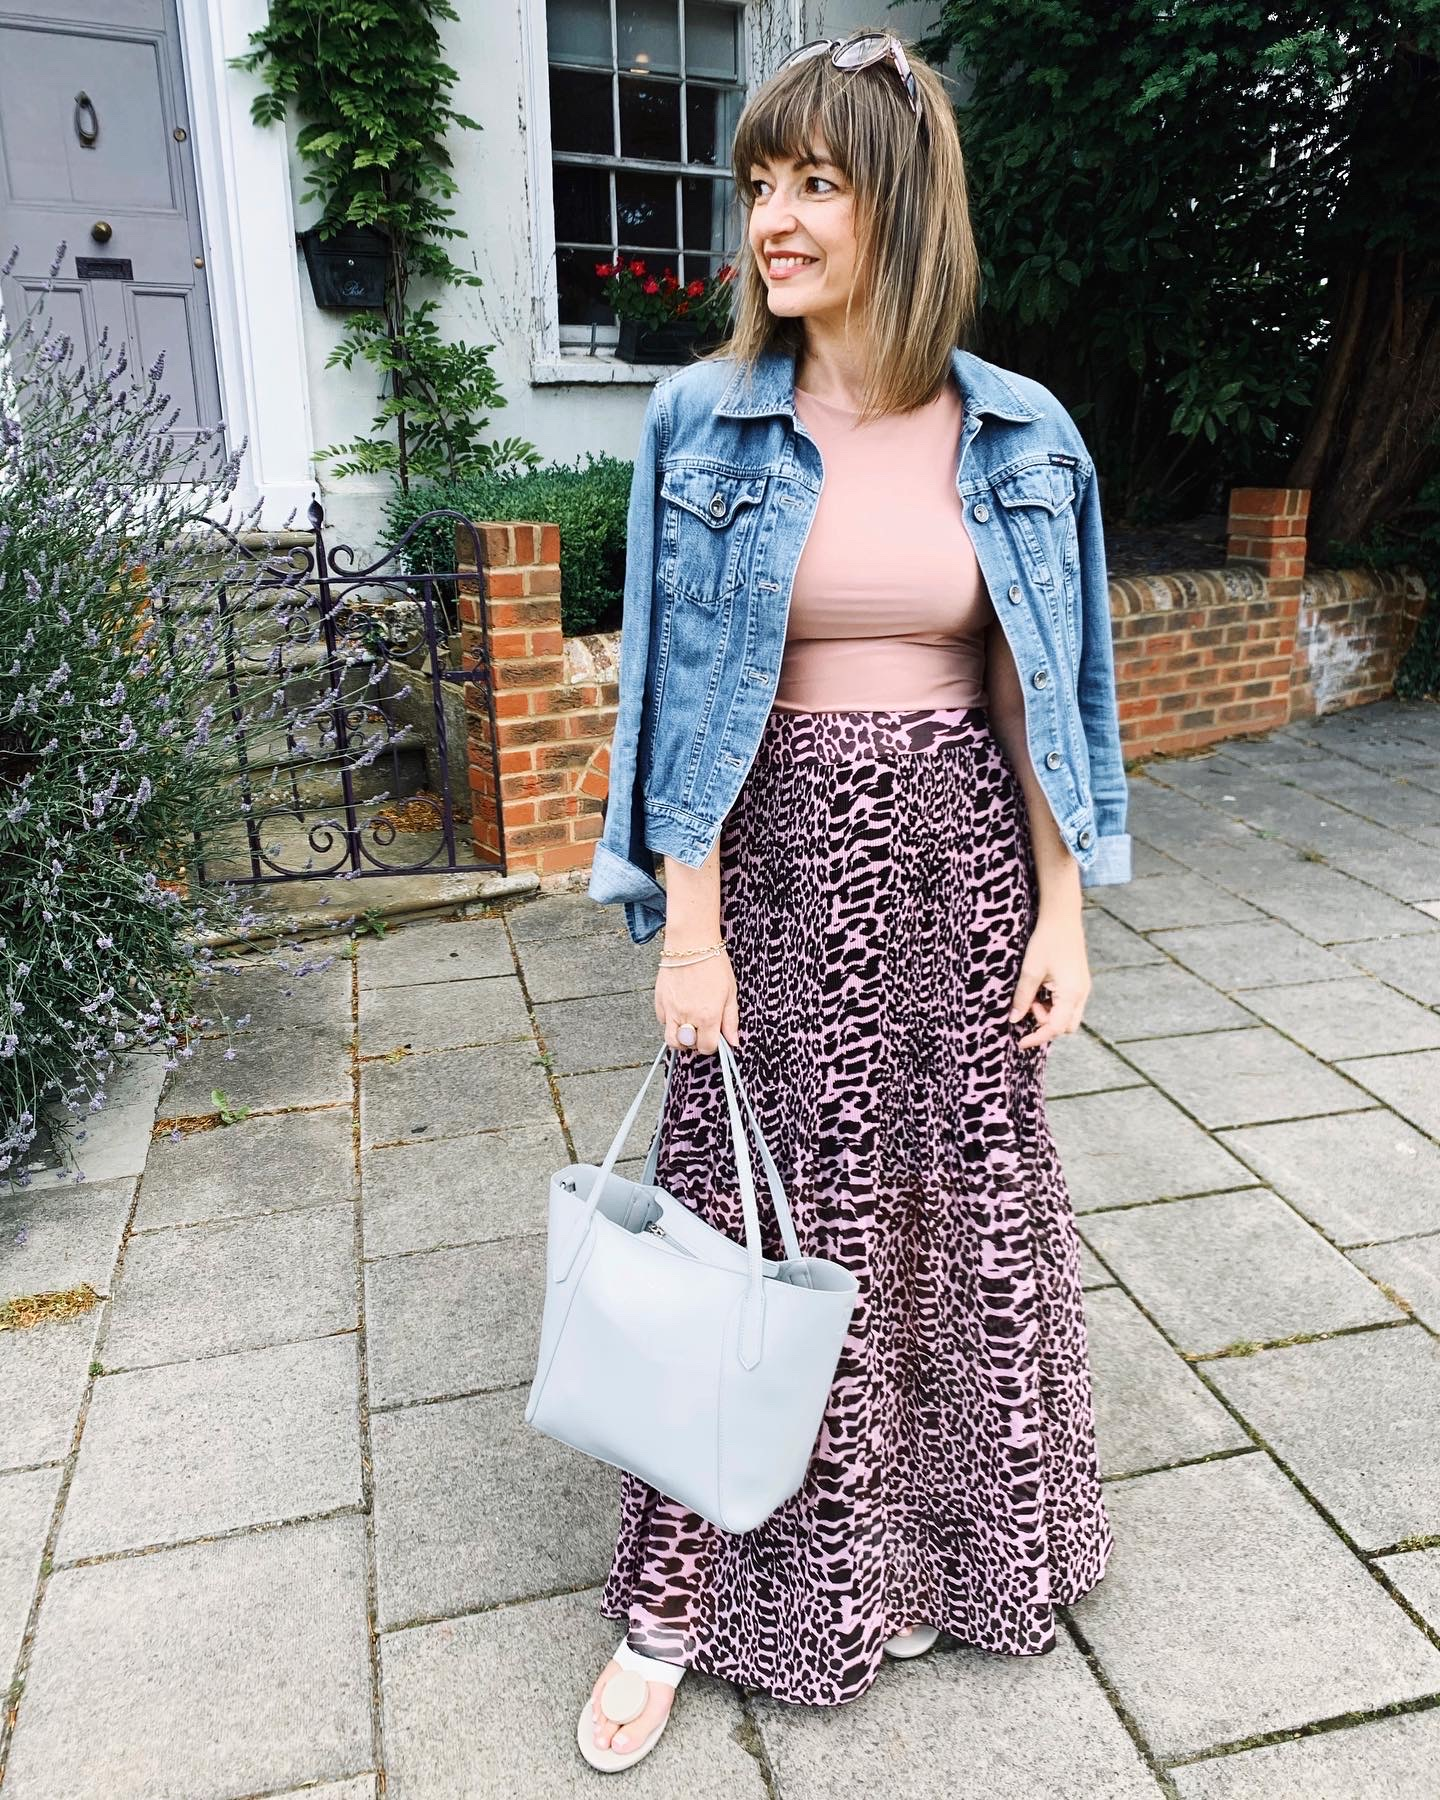 DAY LOOK - HOW TO WEAR A MAXI SKIRT